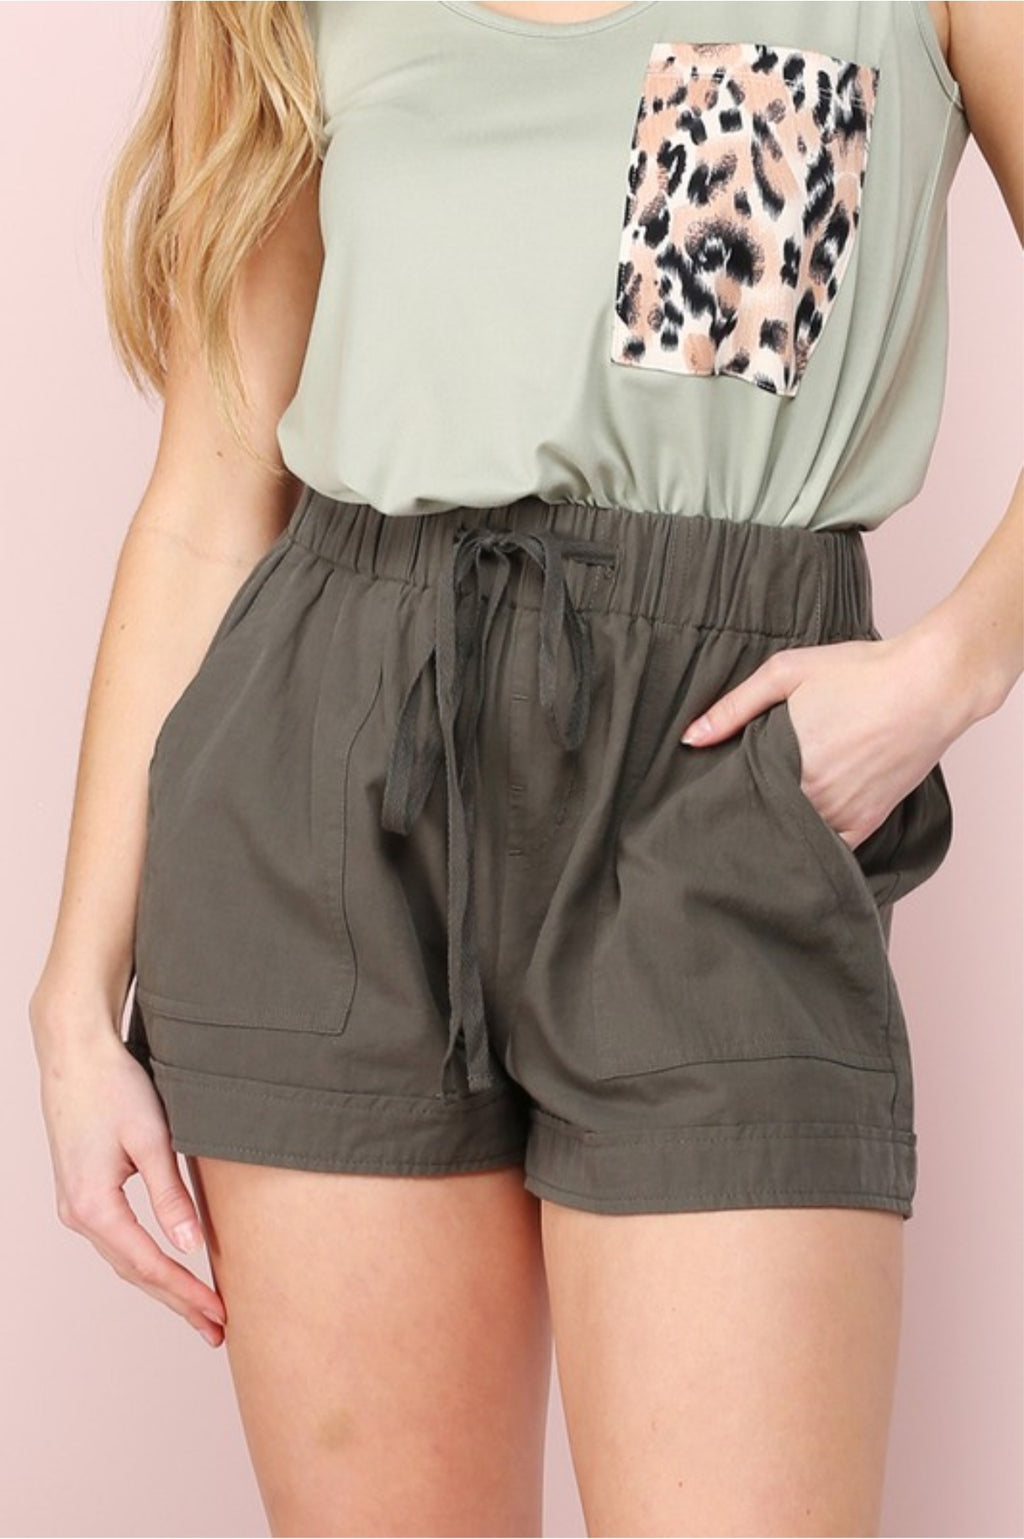 Drawstring shorts with pockets in Olive